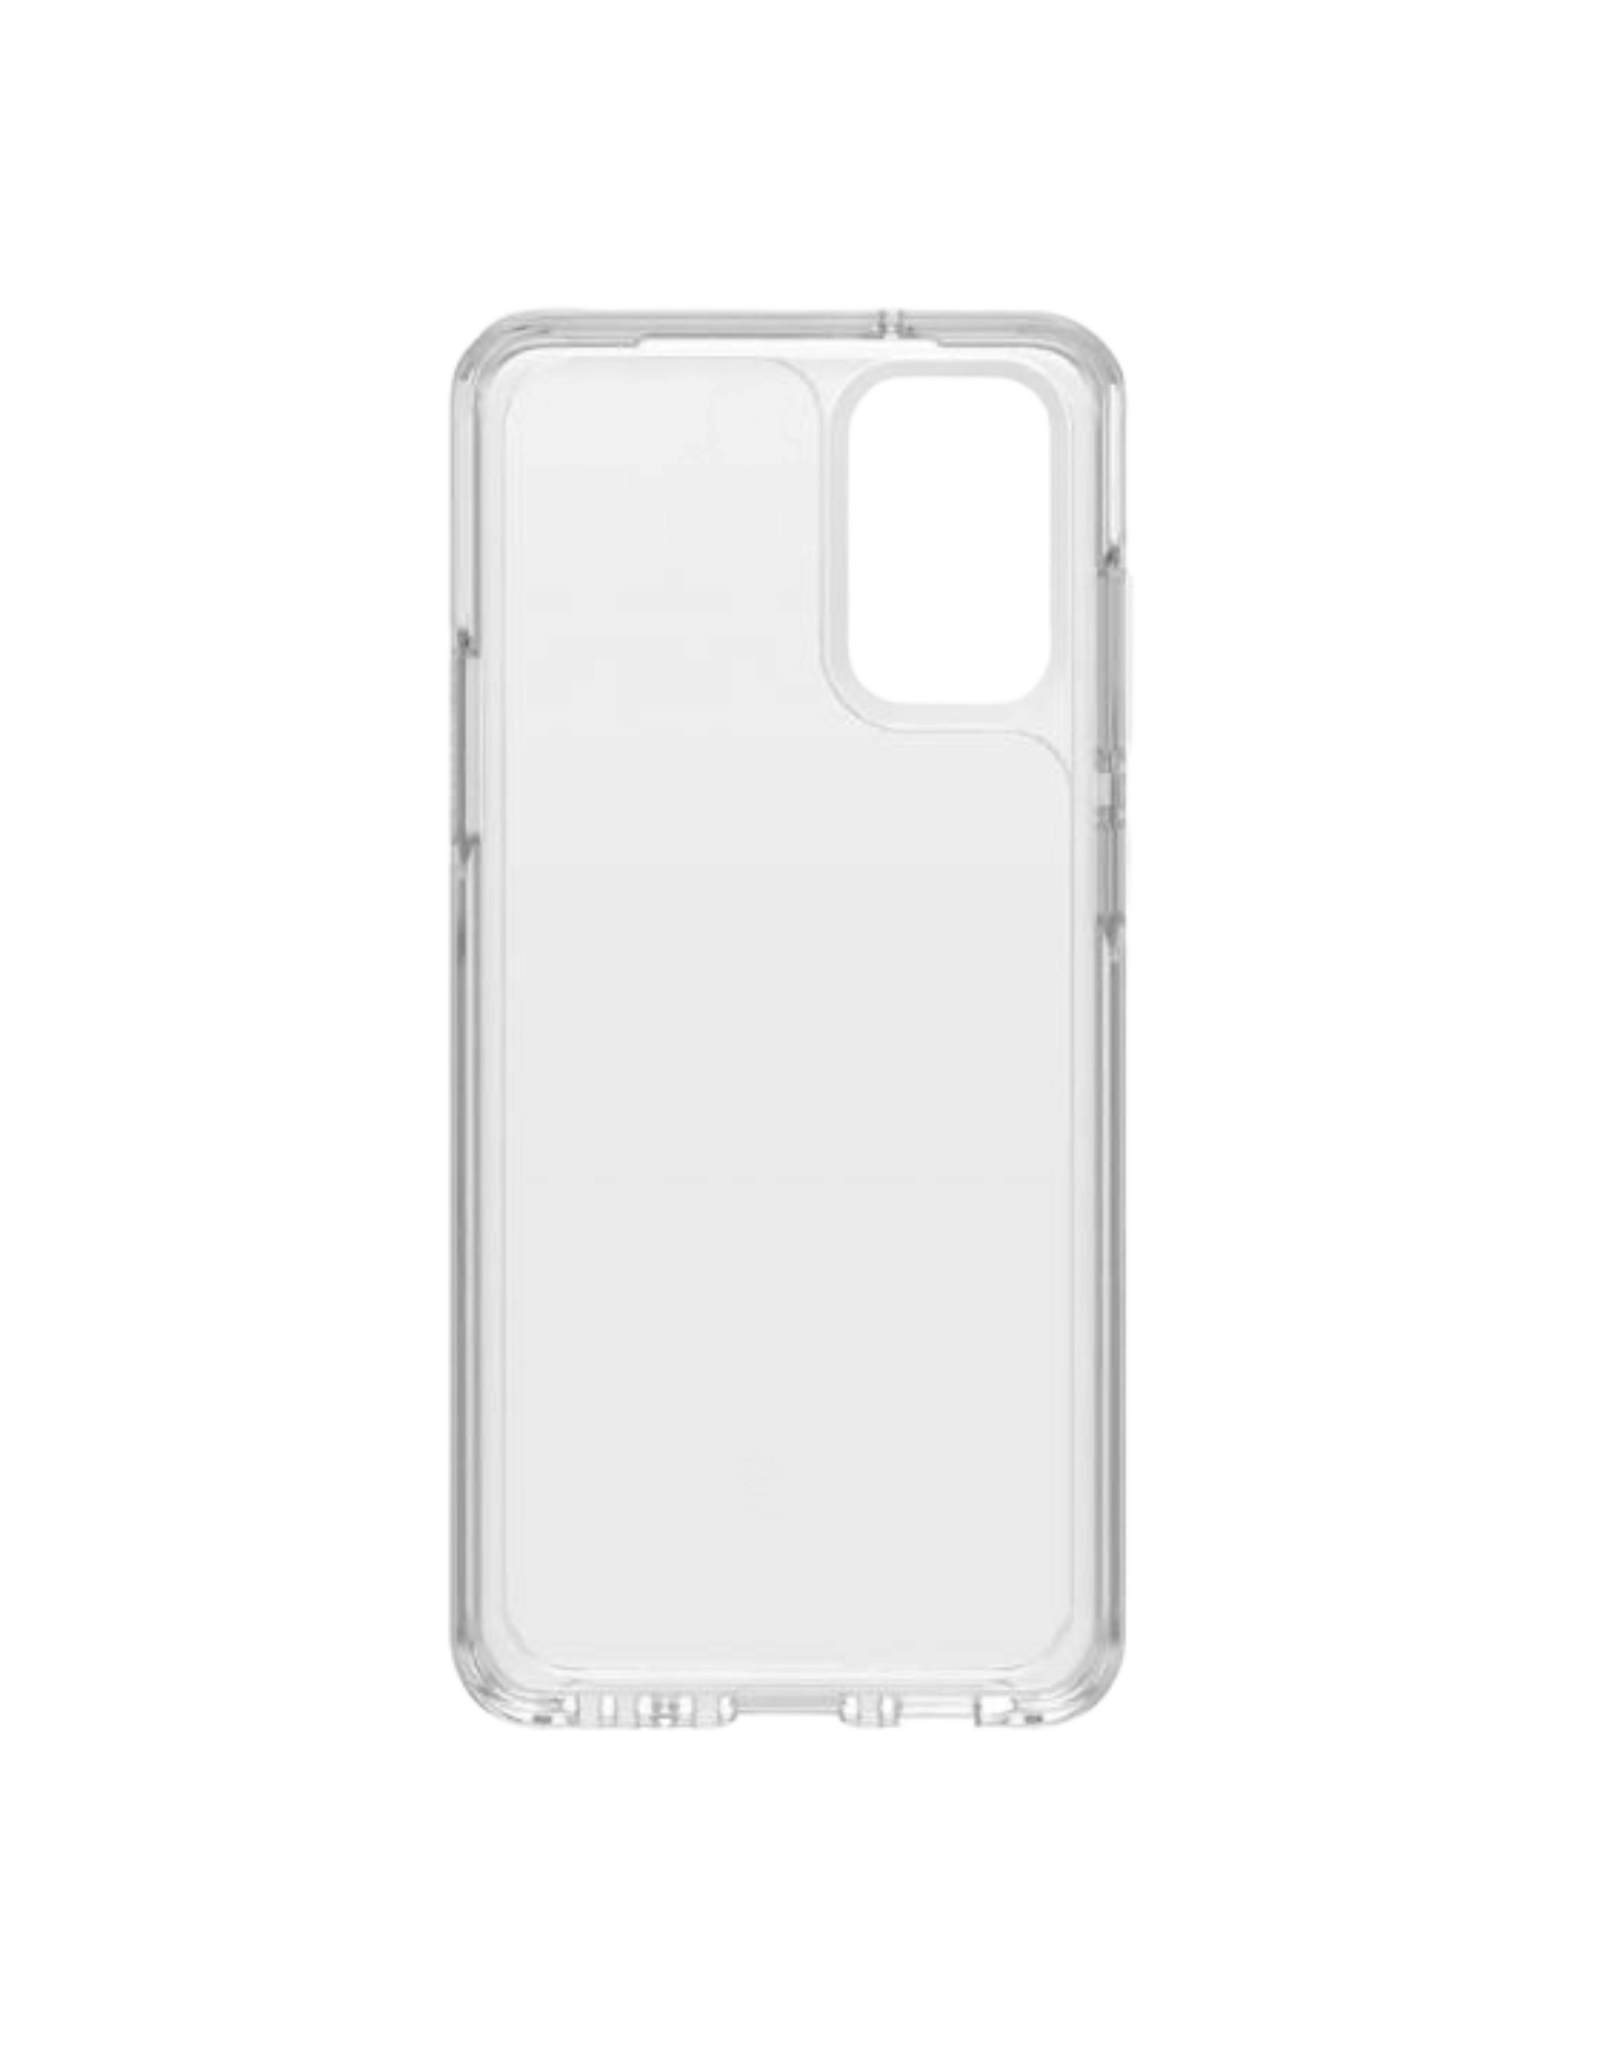 OtterBox Otterbox S20 Ultra Symmetry Clear